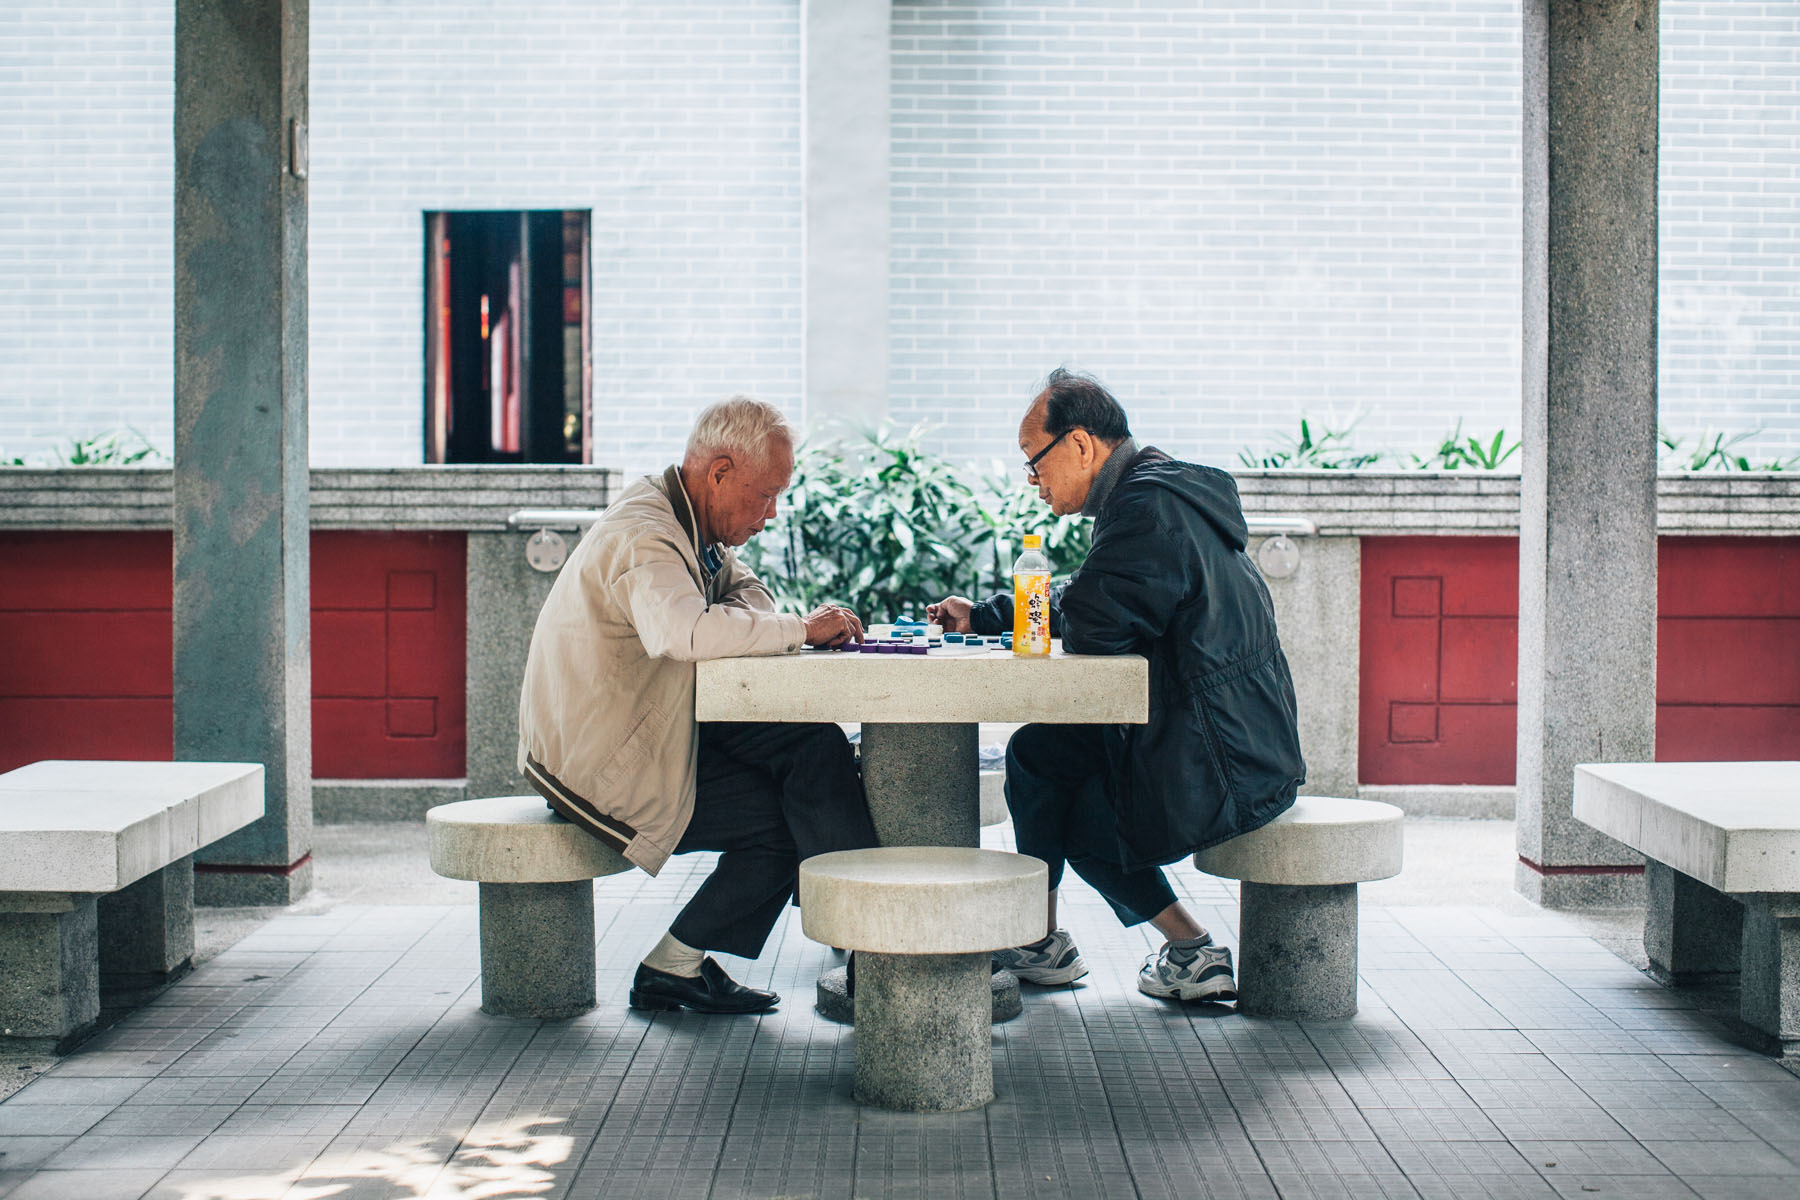 2130_HONG_KONG_14_HK_CHESS_006copy_